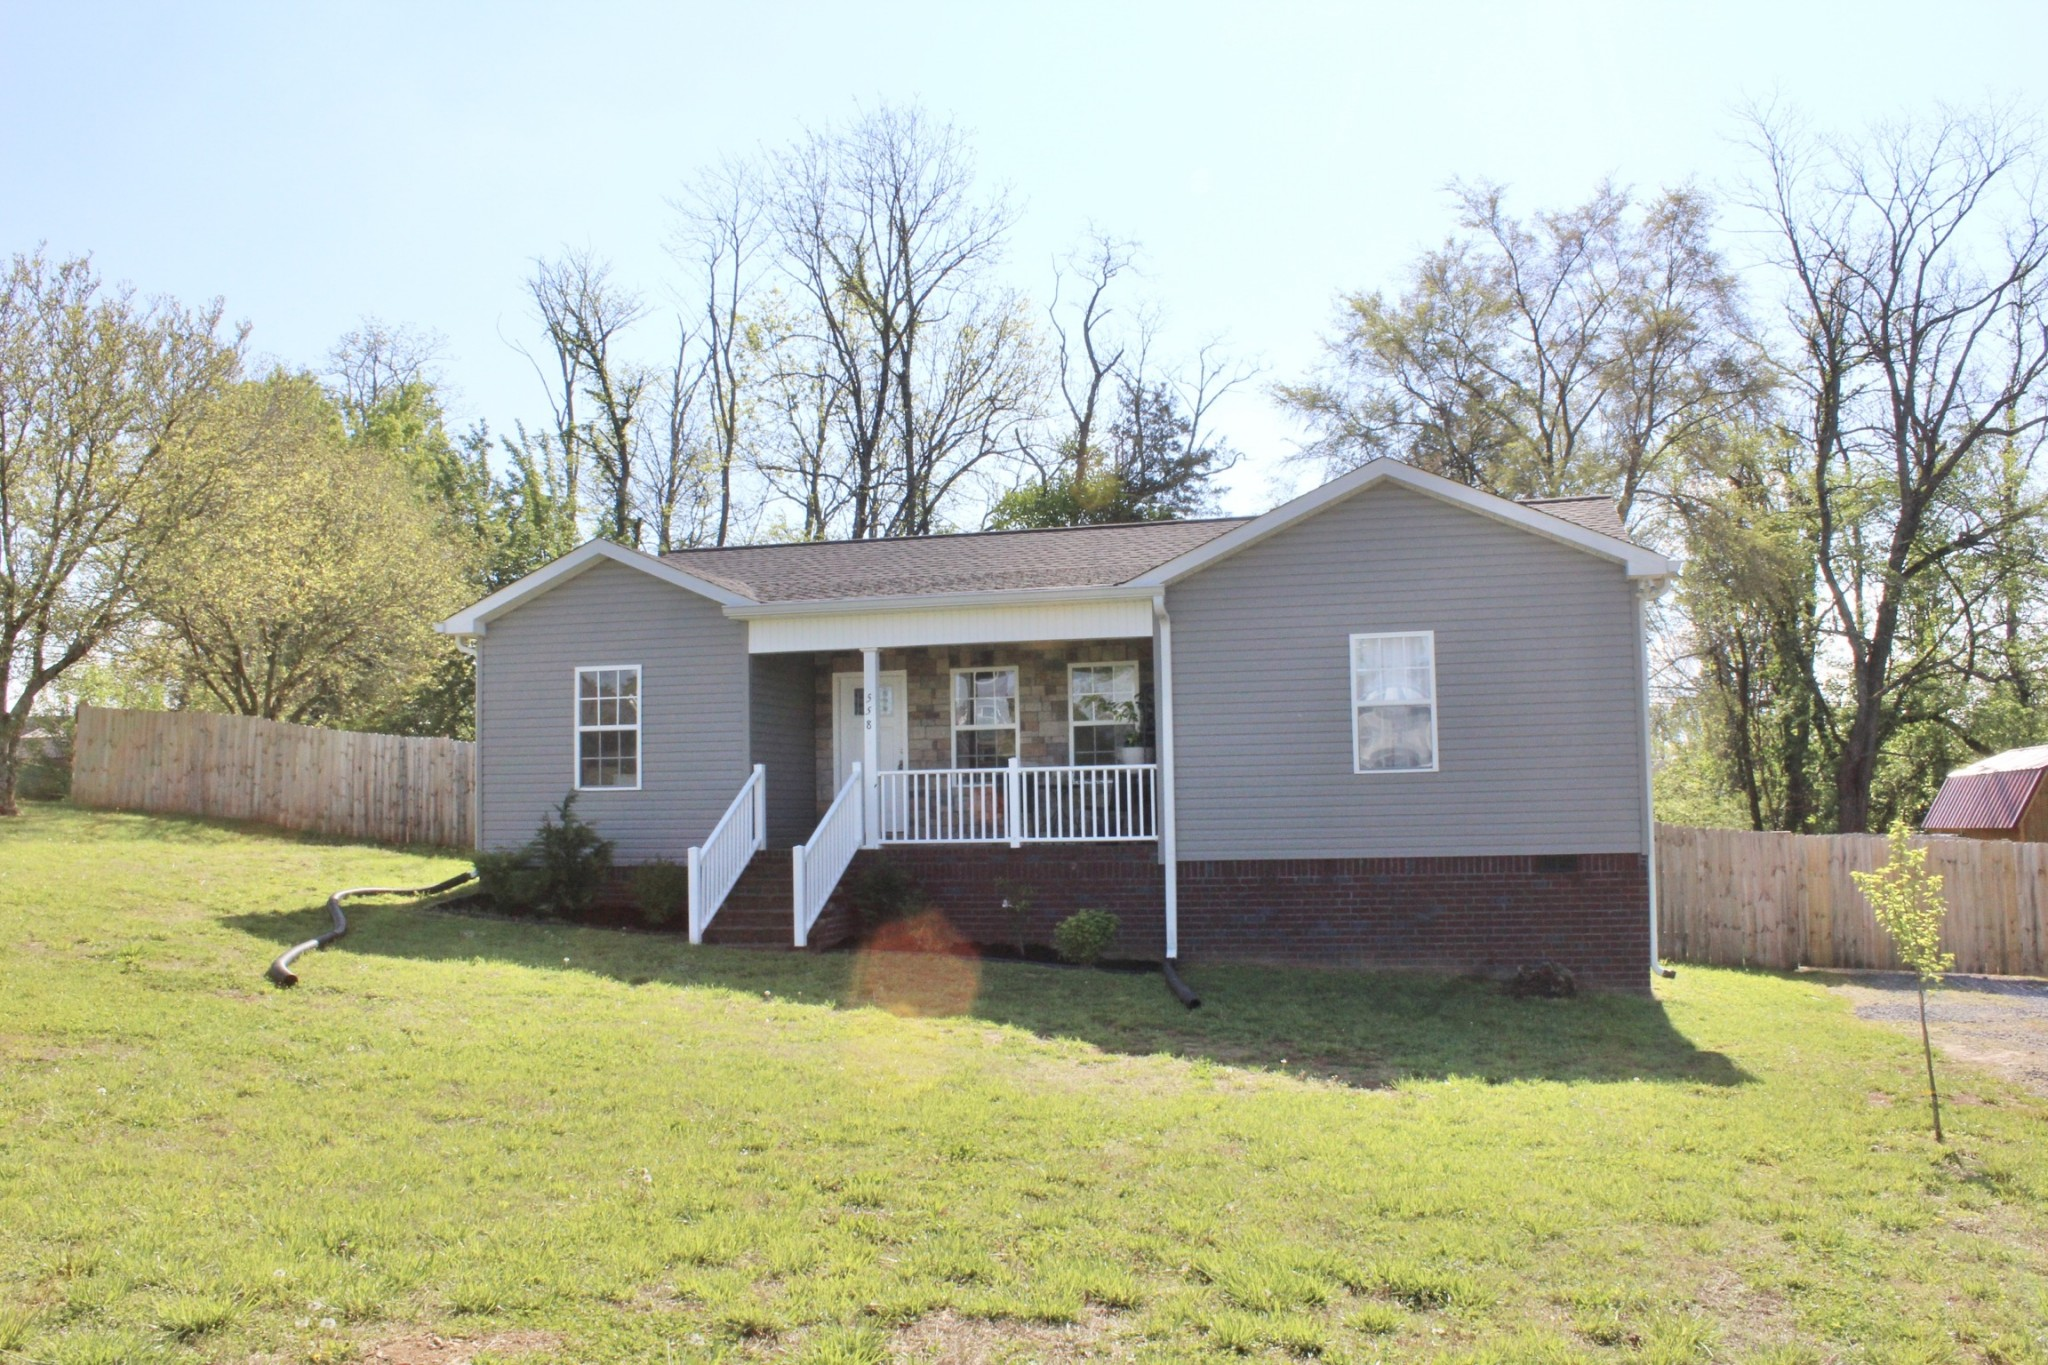 558 Sneed Blvd Property Photo - Lafayette, TN real estate listing